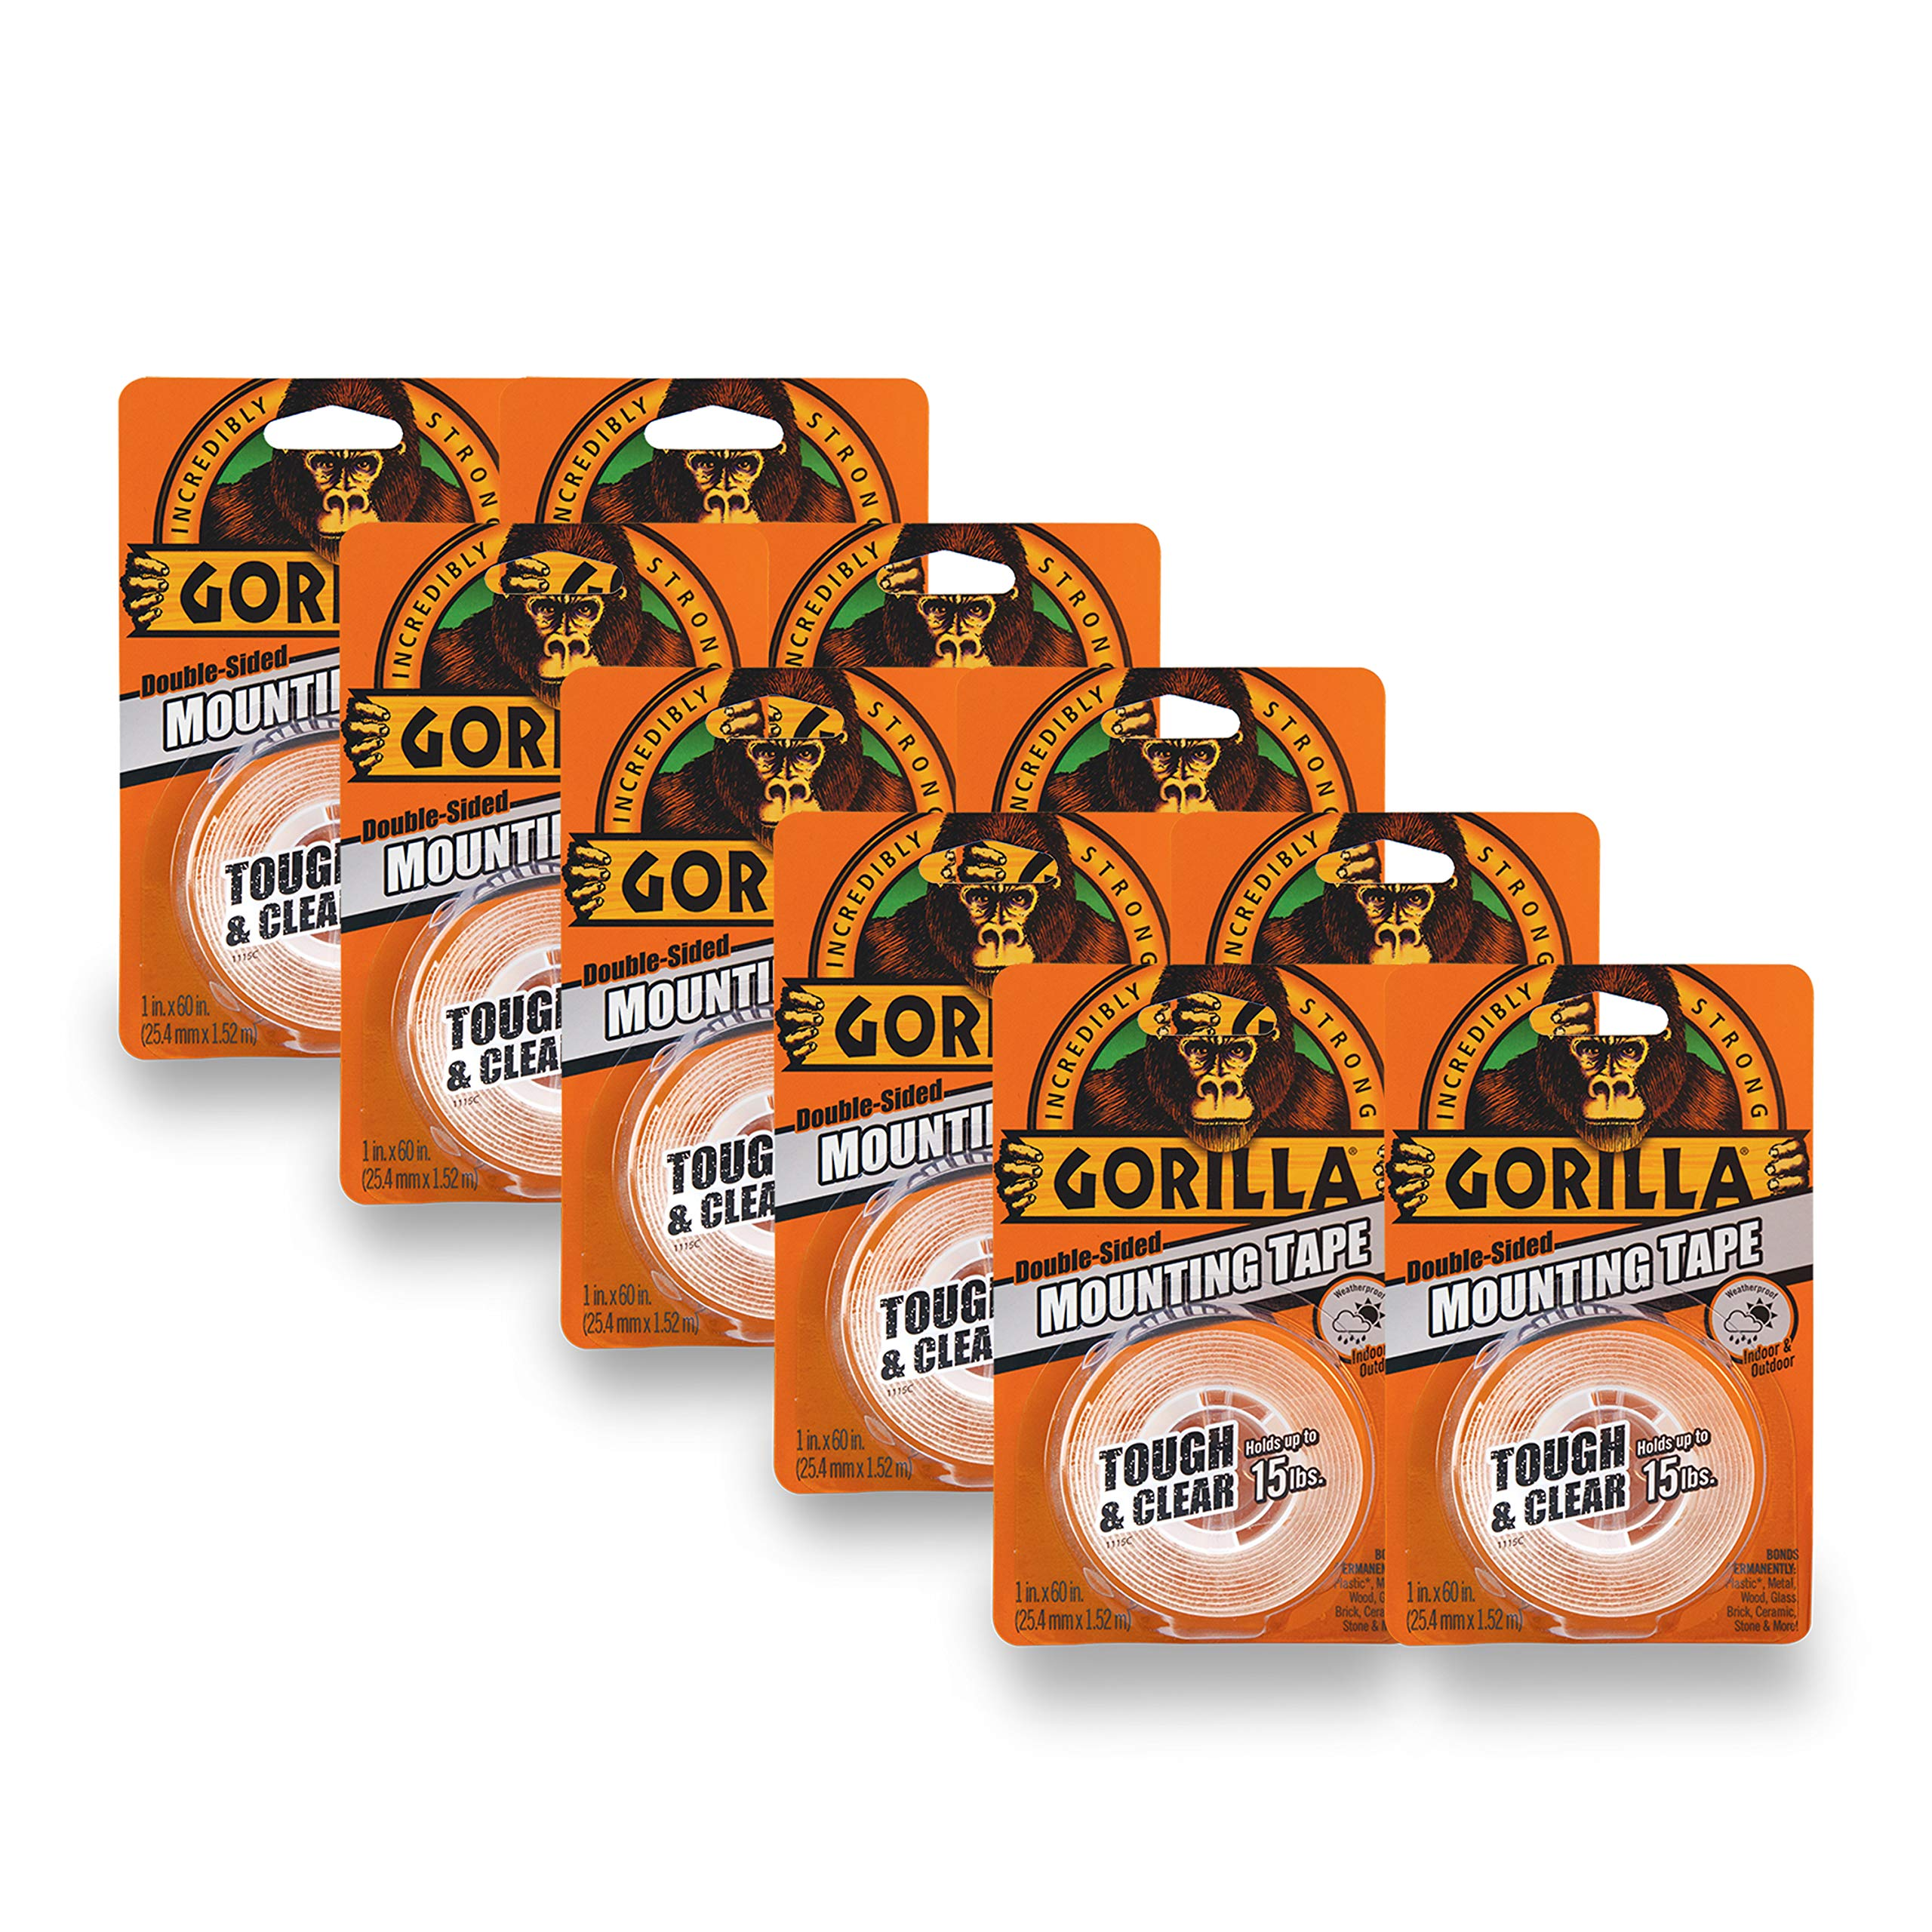 Gorilla Tough & Clear Double Sided Mounting Tape, 1 Inch x 60 Inches, Clear, (Pack of 10) by Gorilla